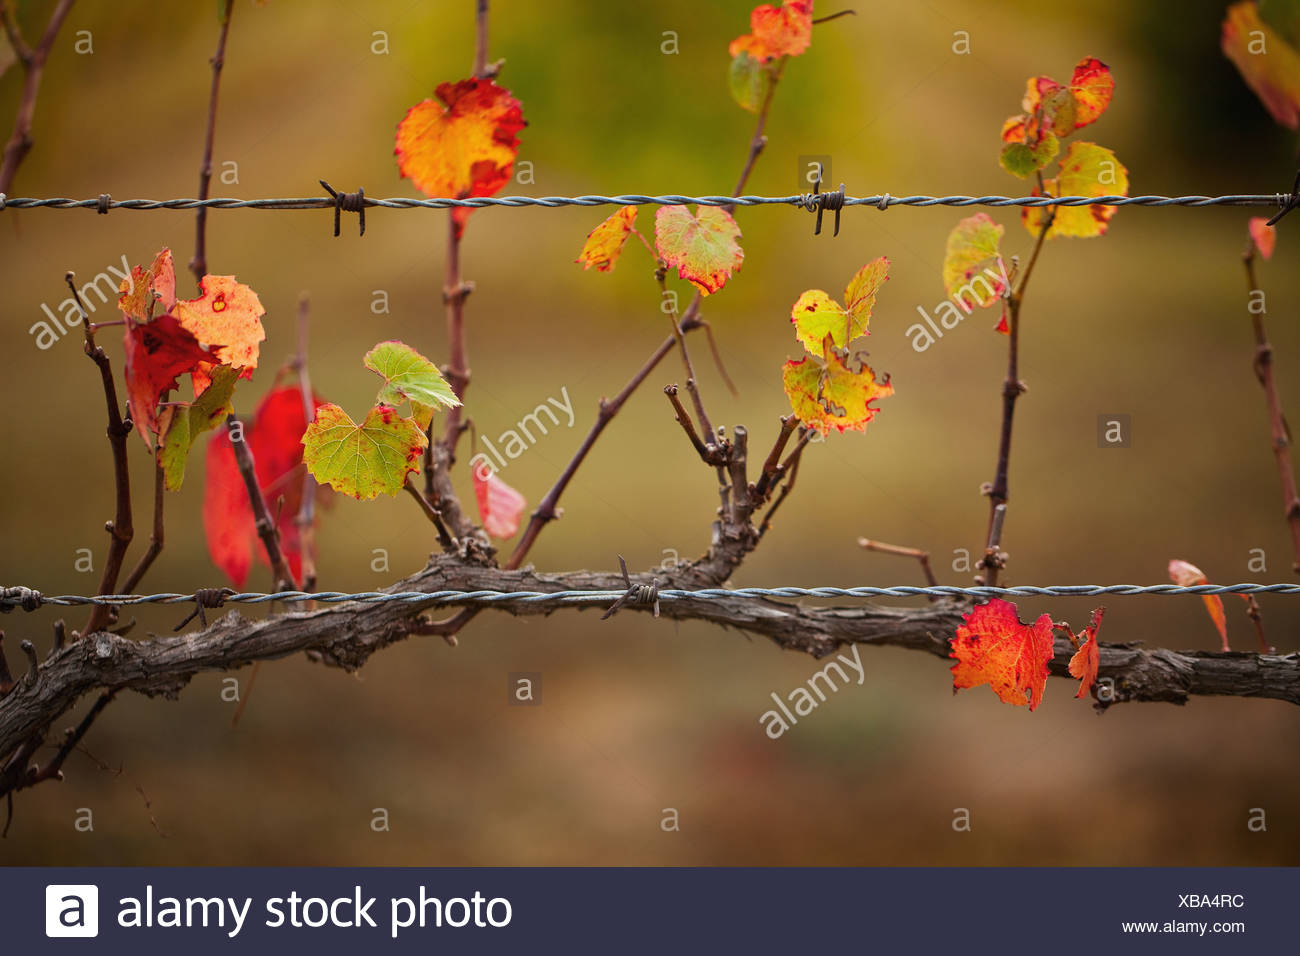 Grape vine on barbed wire fence, Tulbagh, South Africa - Stock Image